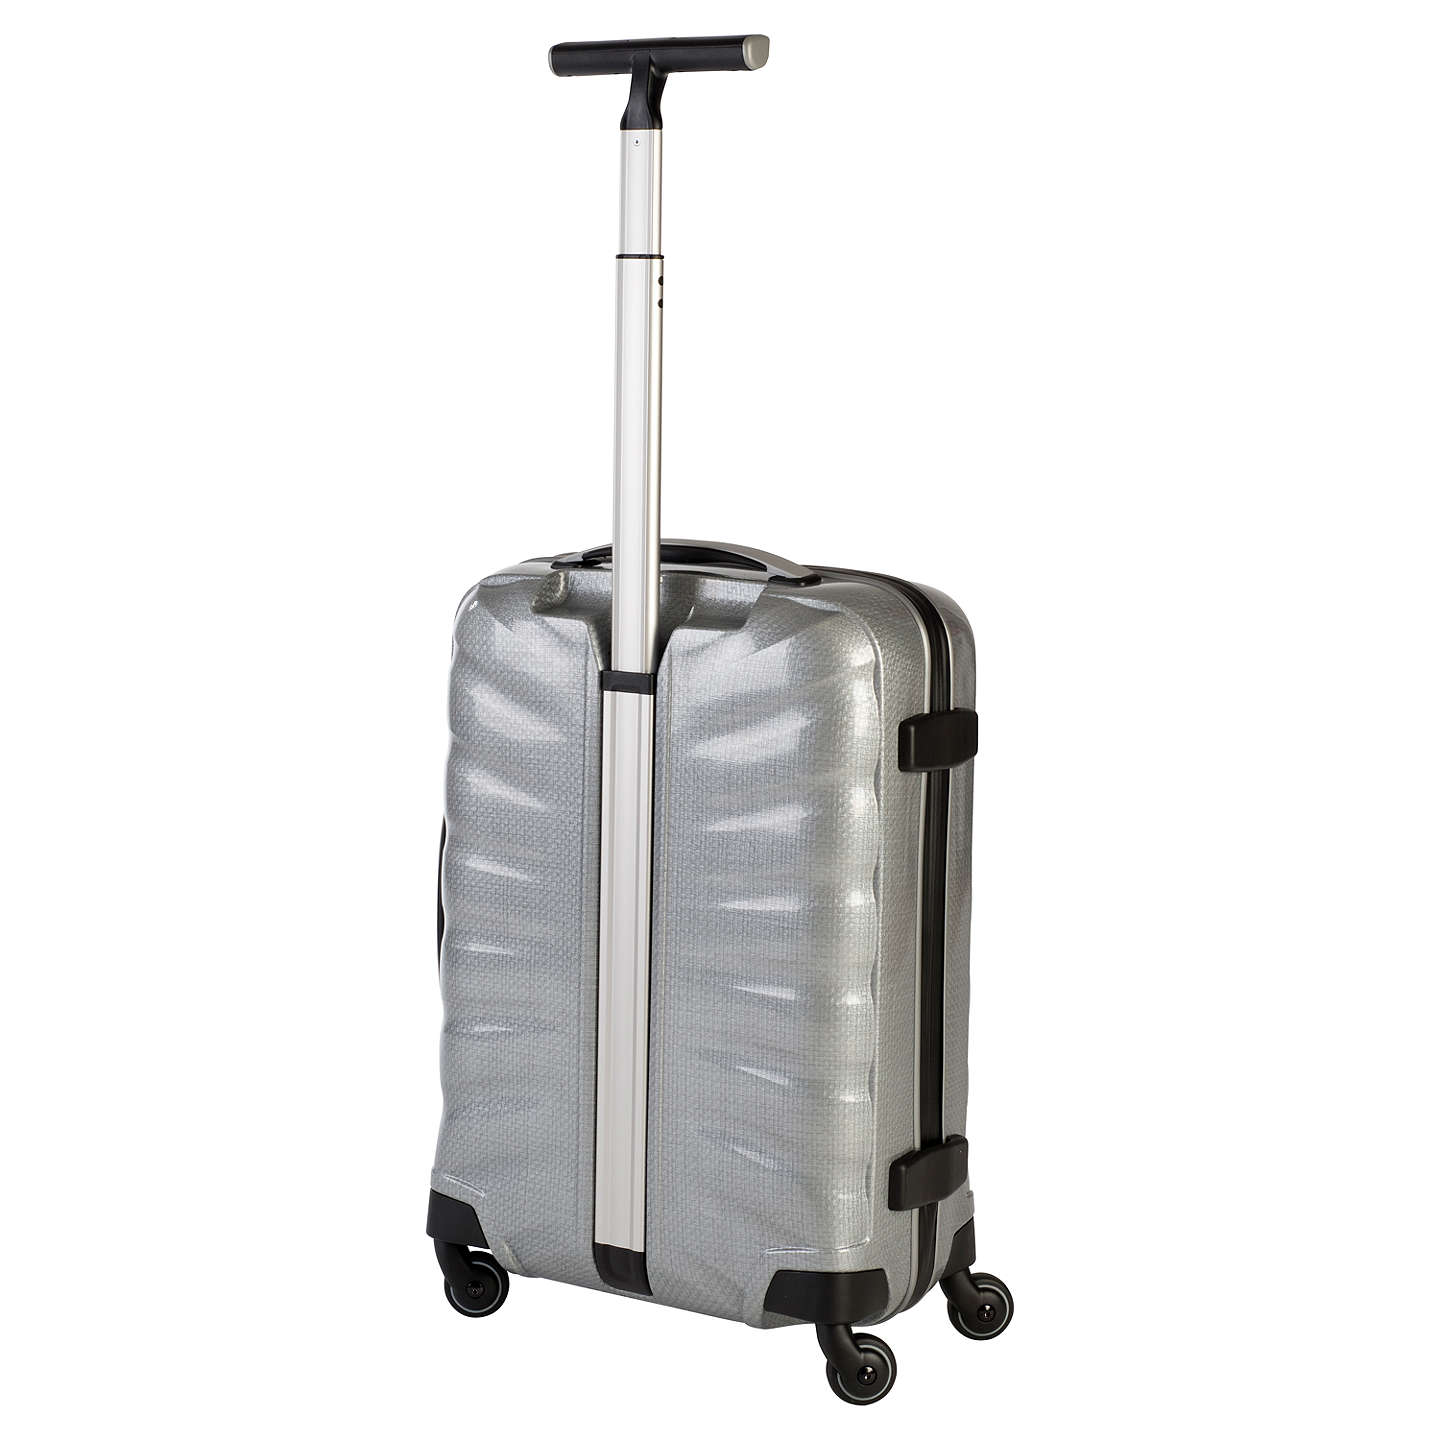 BuySamsonite Firelite 4-Wheel 55cm Cabin Spinner Suitcase, Silver Online at johnlewis.com